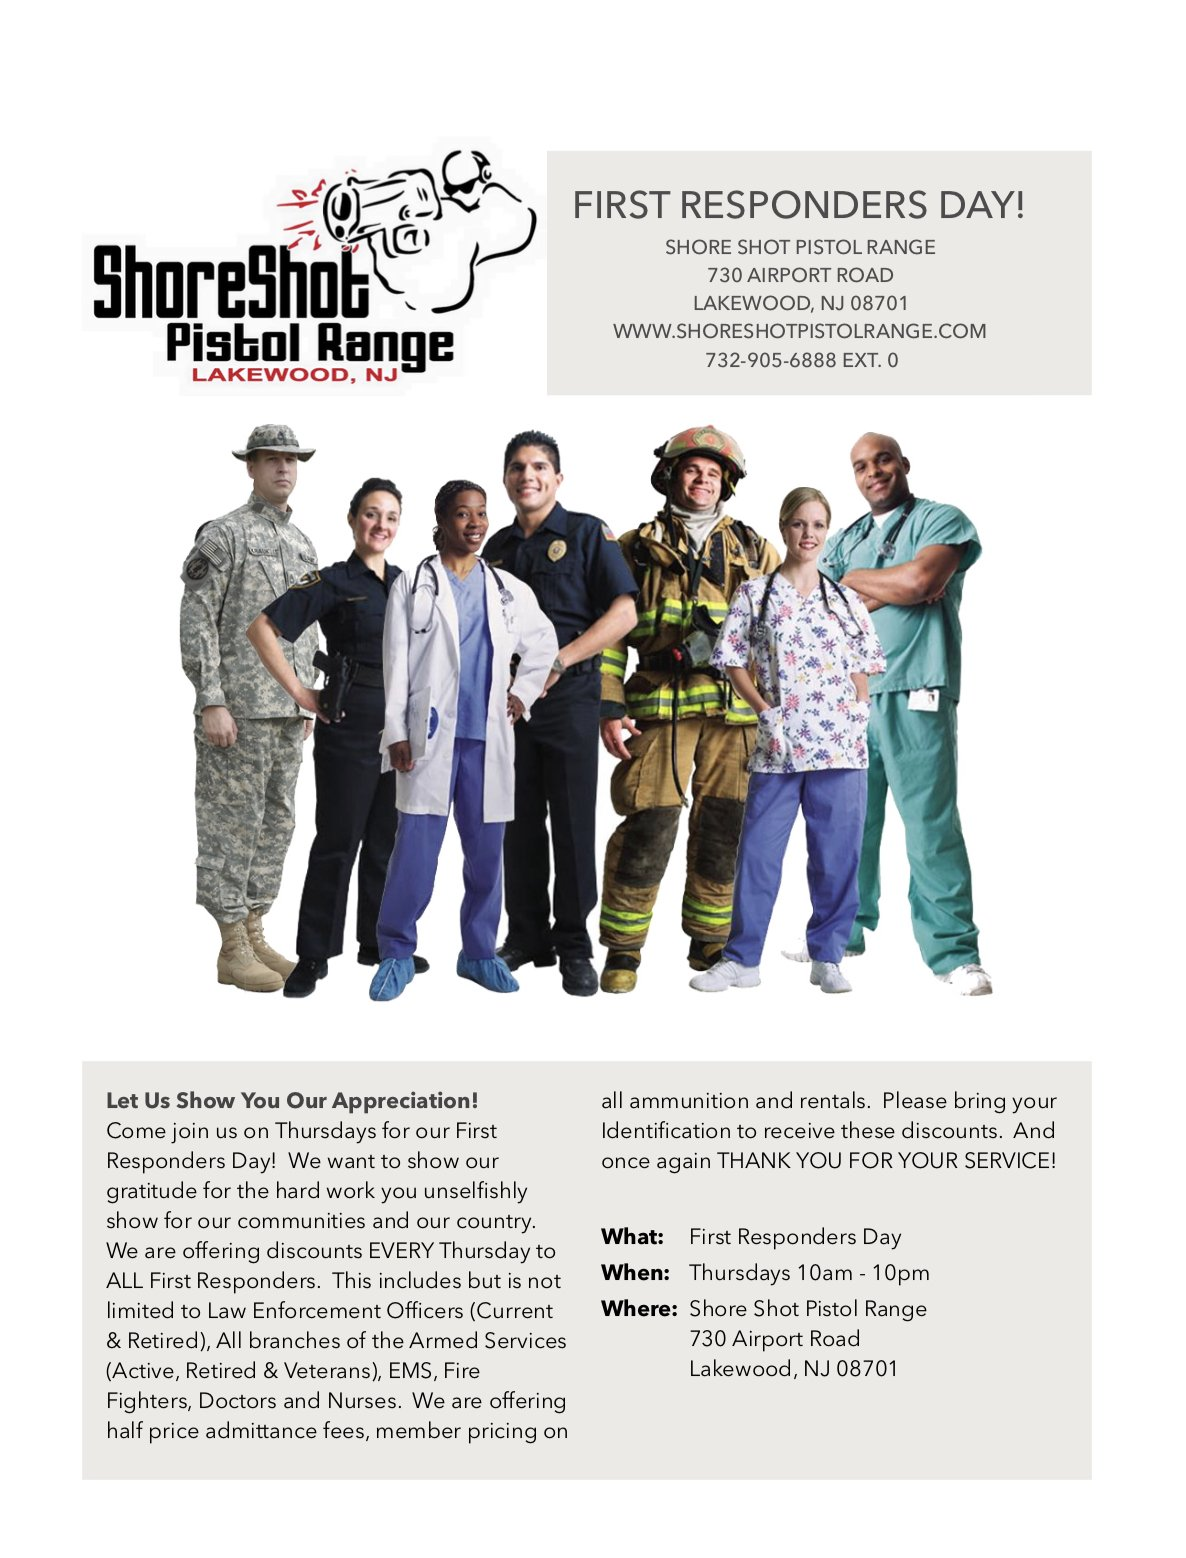 First Responders Day Every Thursday!